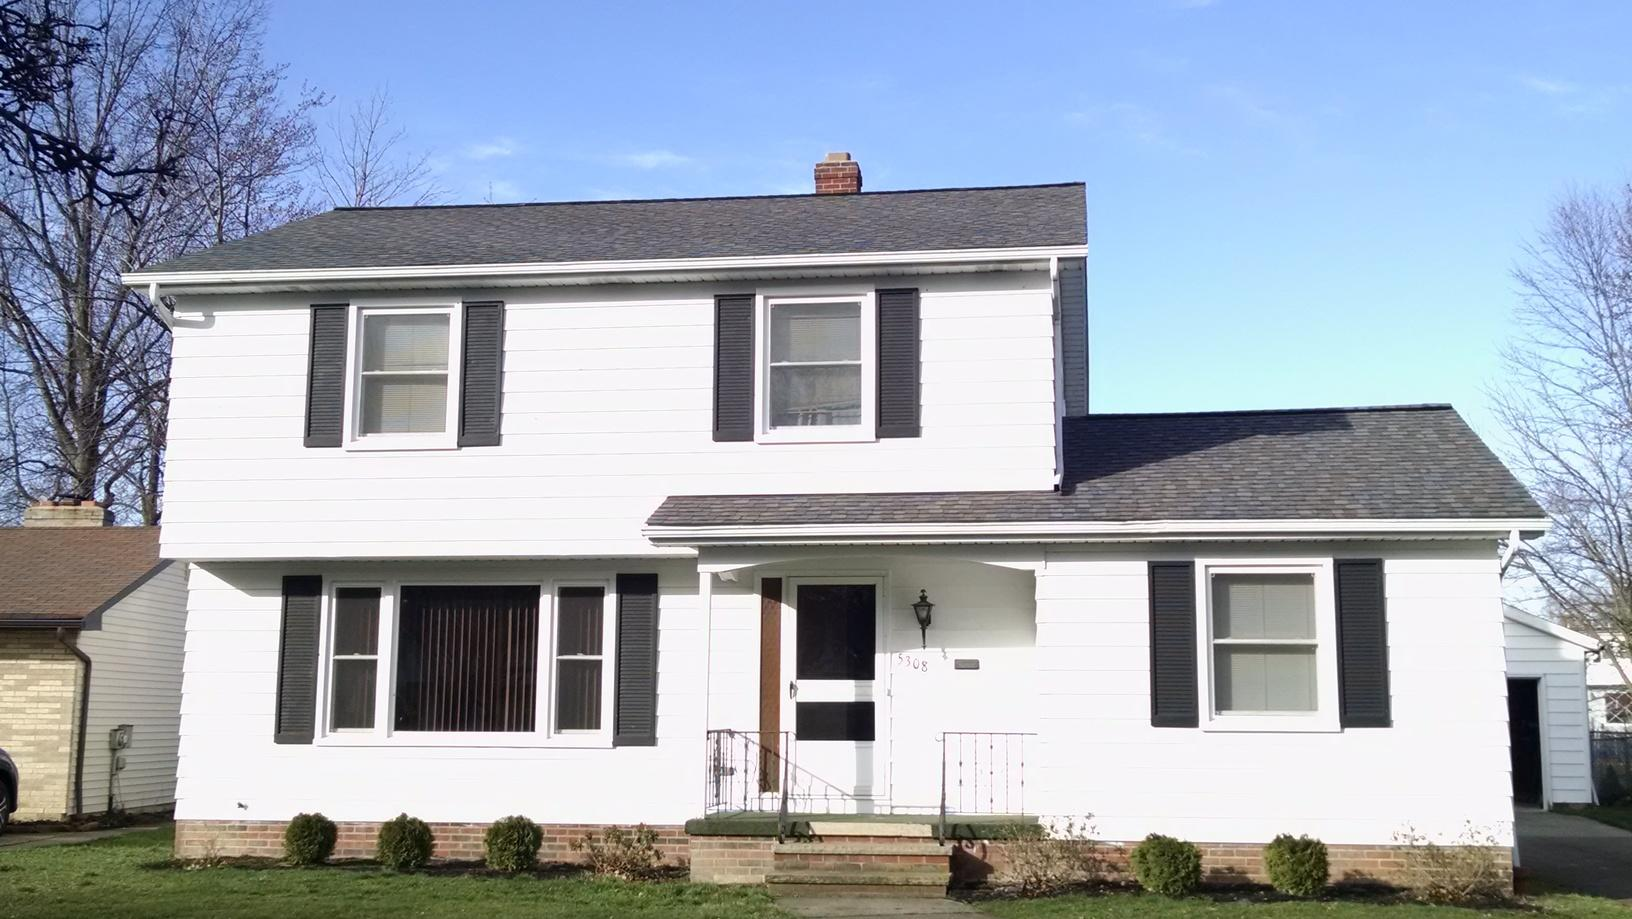 Willoughby Roof Replacement - After Photo